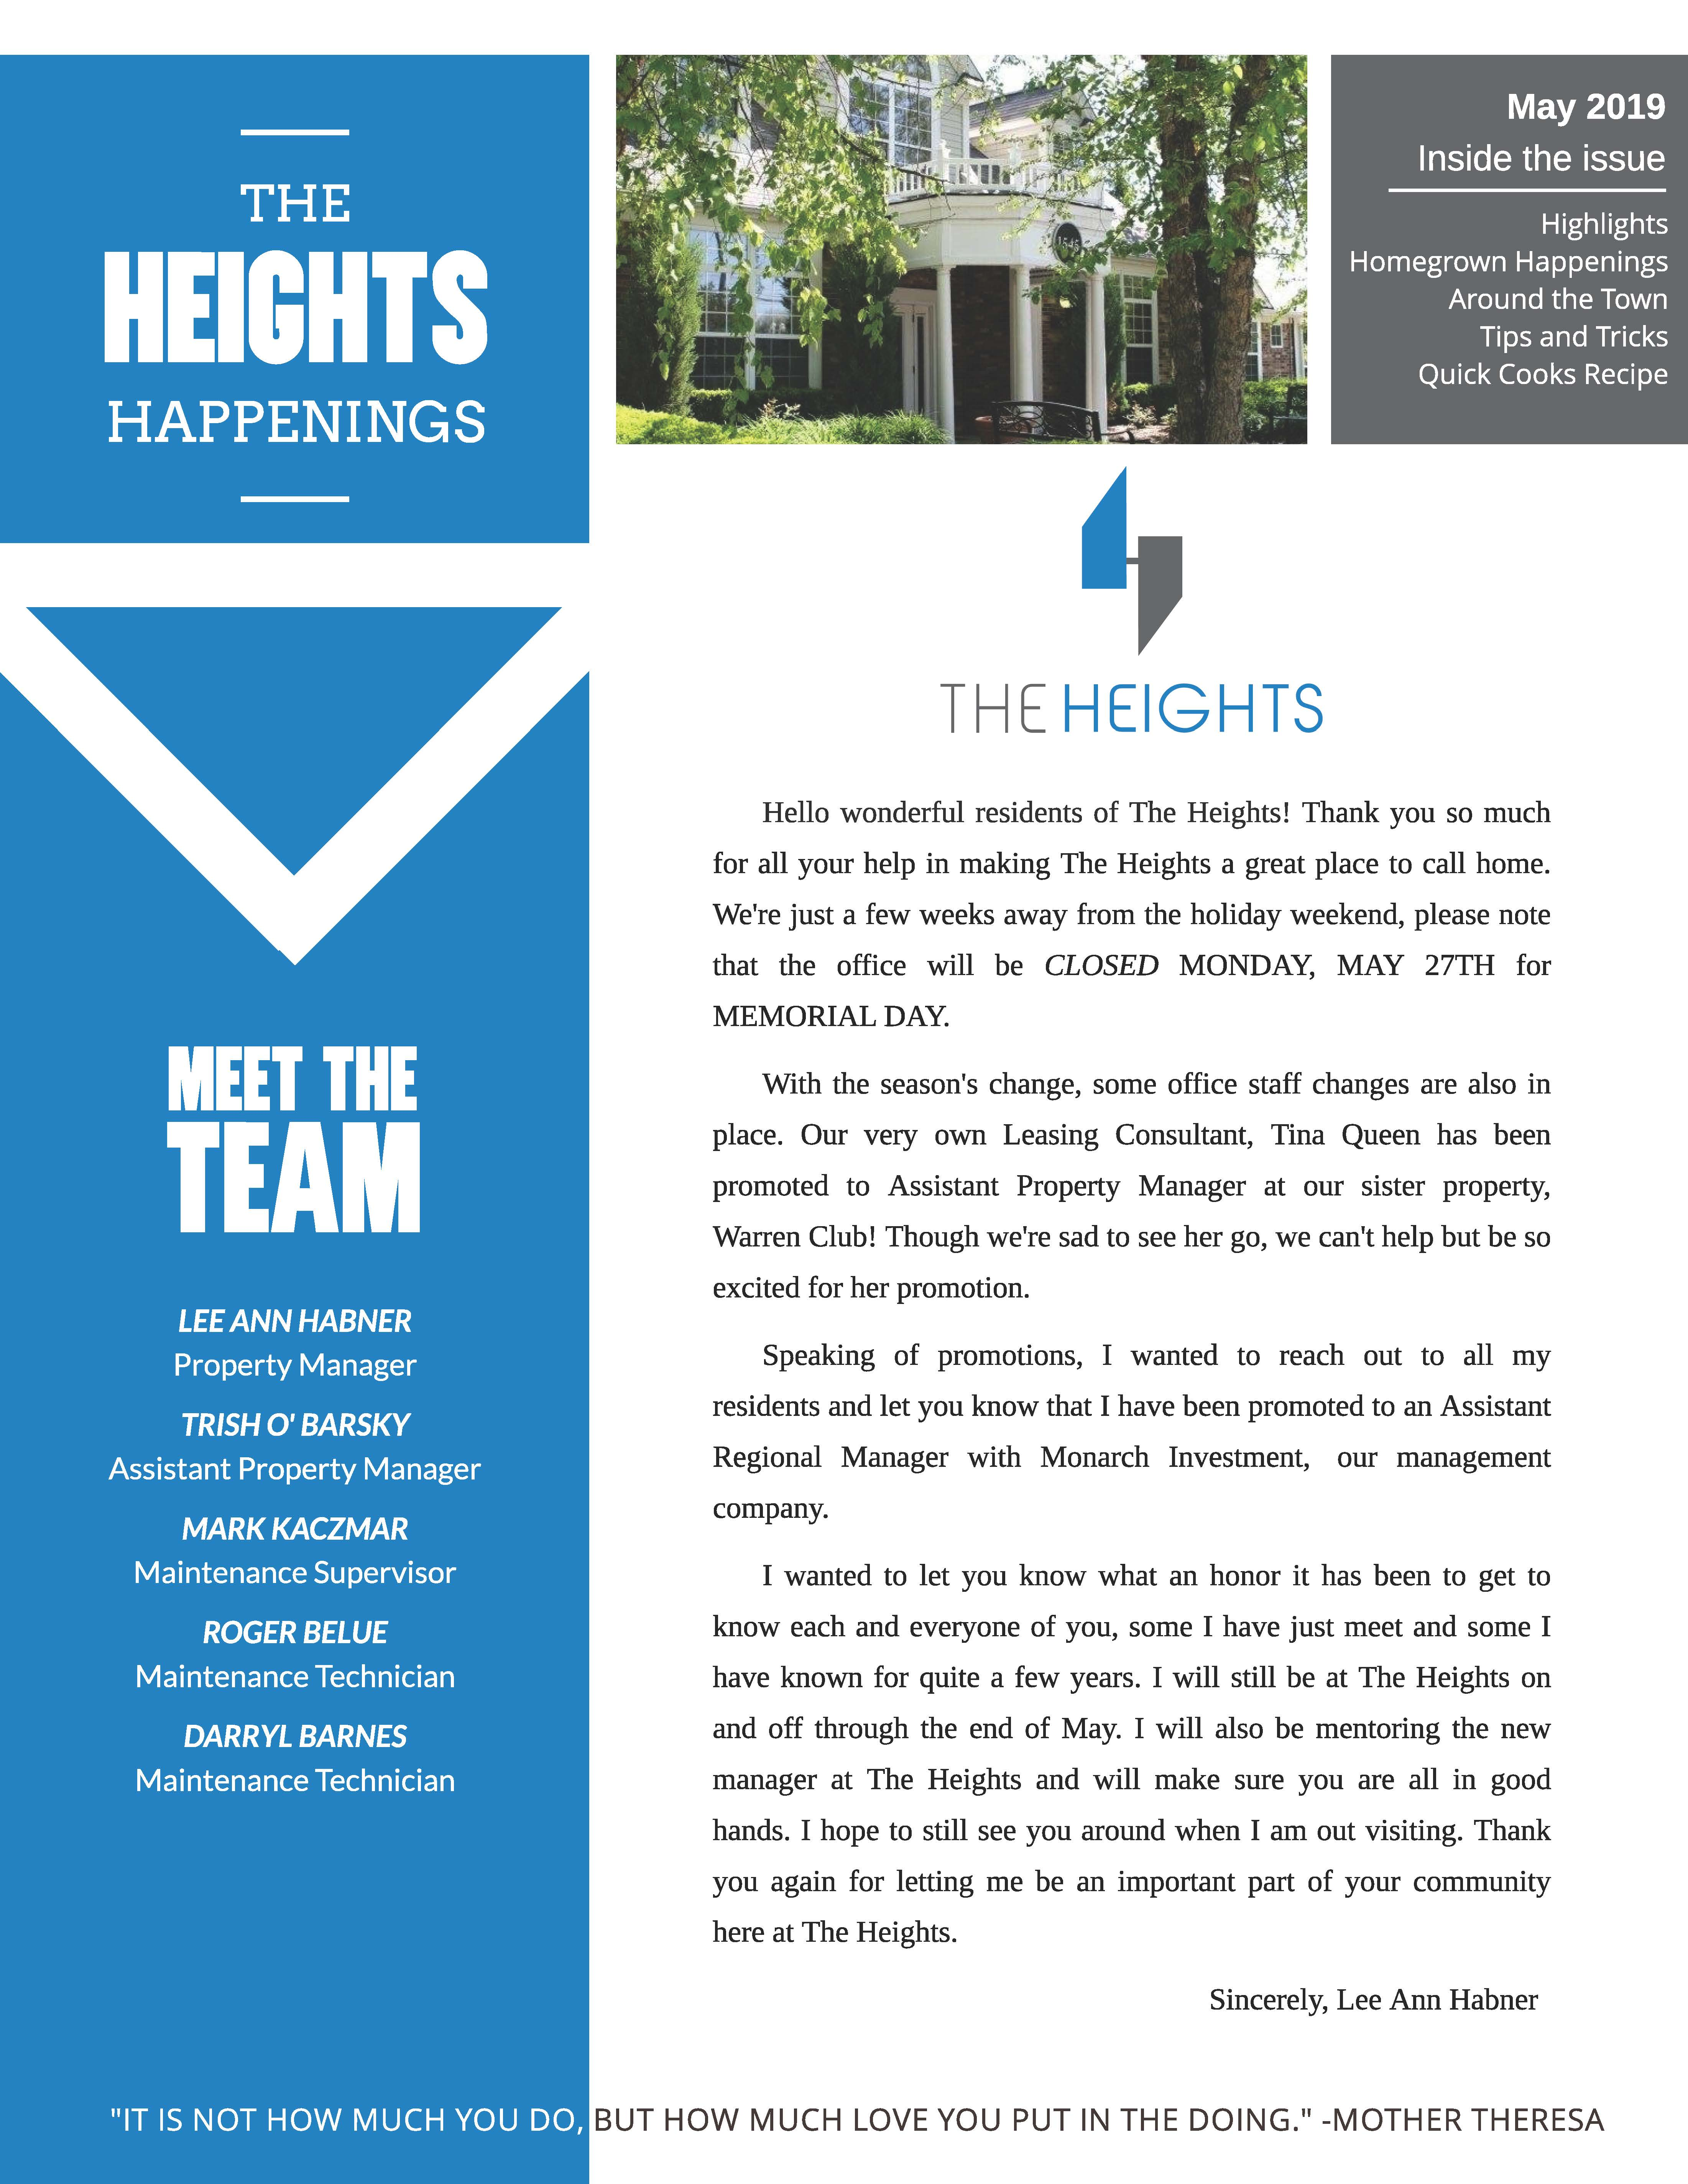 The The Heights Community